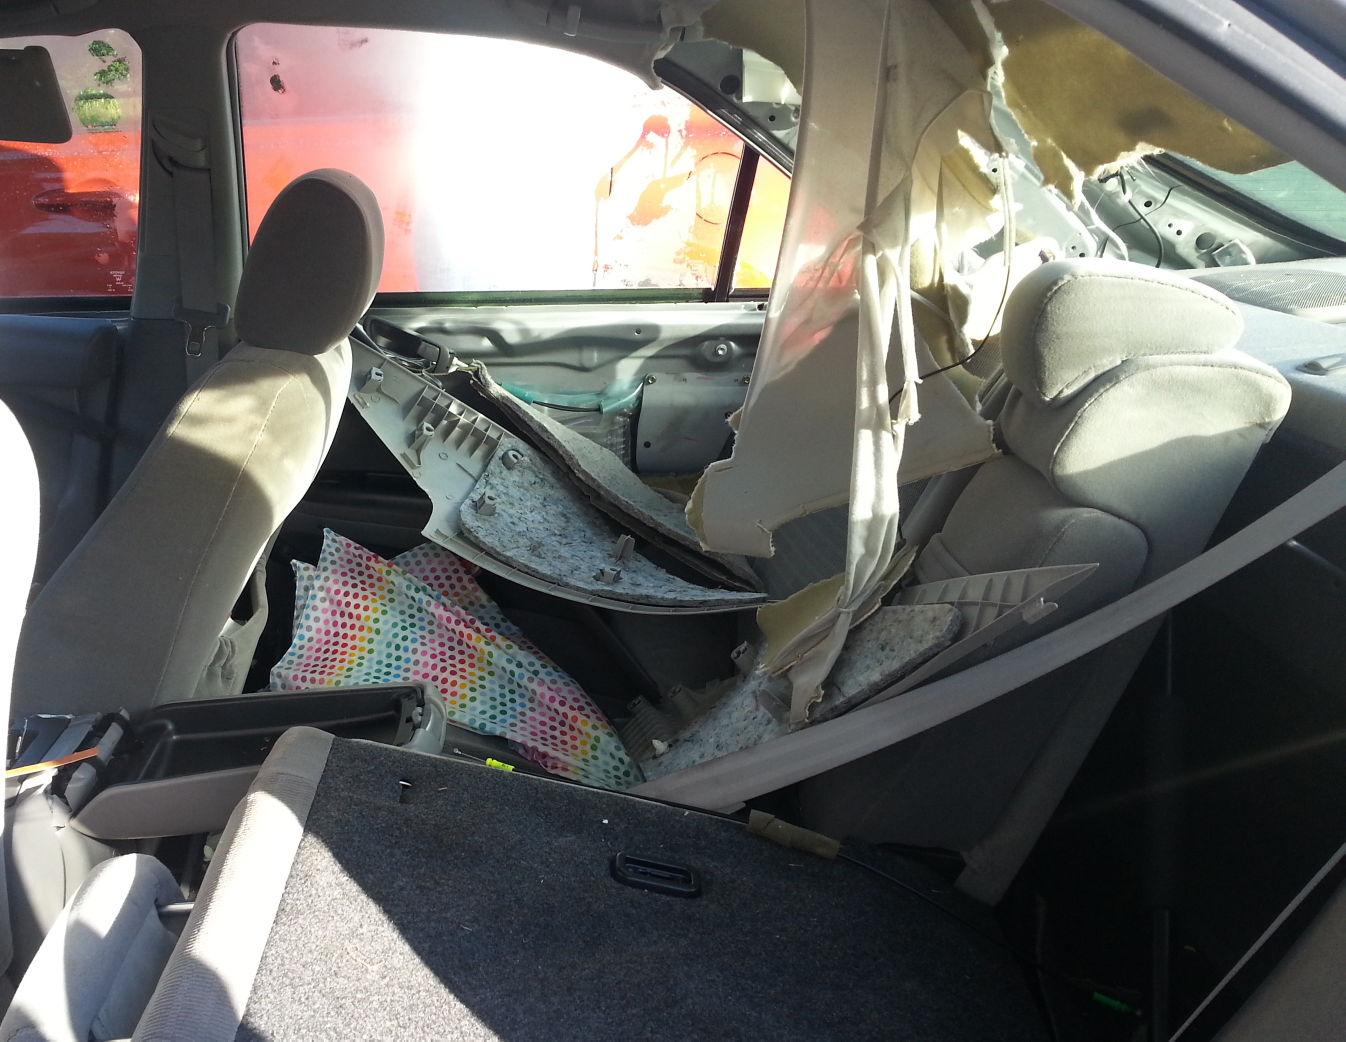 bear destroys car after getting trapped inside looking for food local news. Black Bedroom Furniture Sets. Home Design Ideas